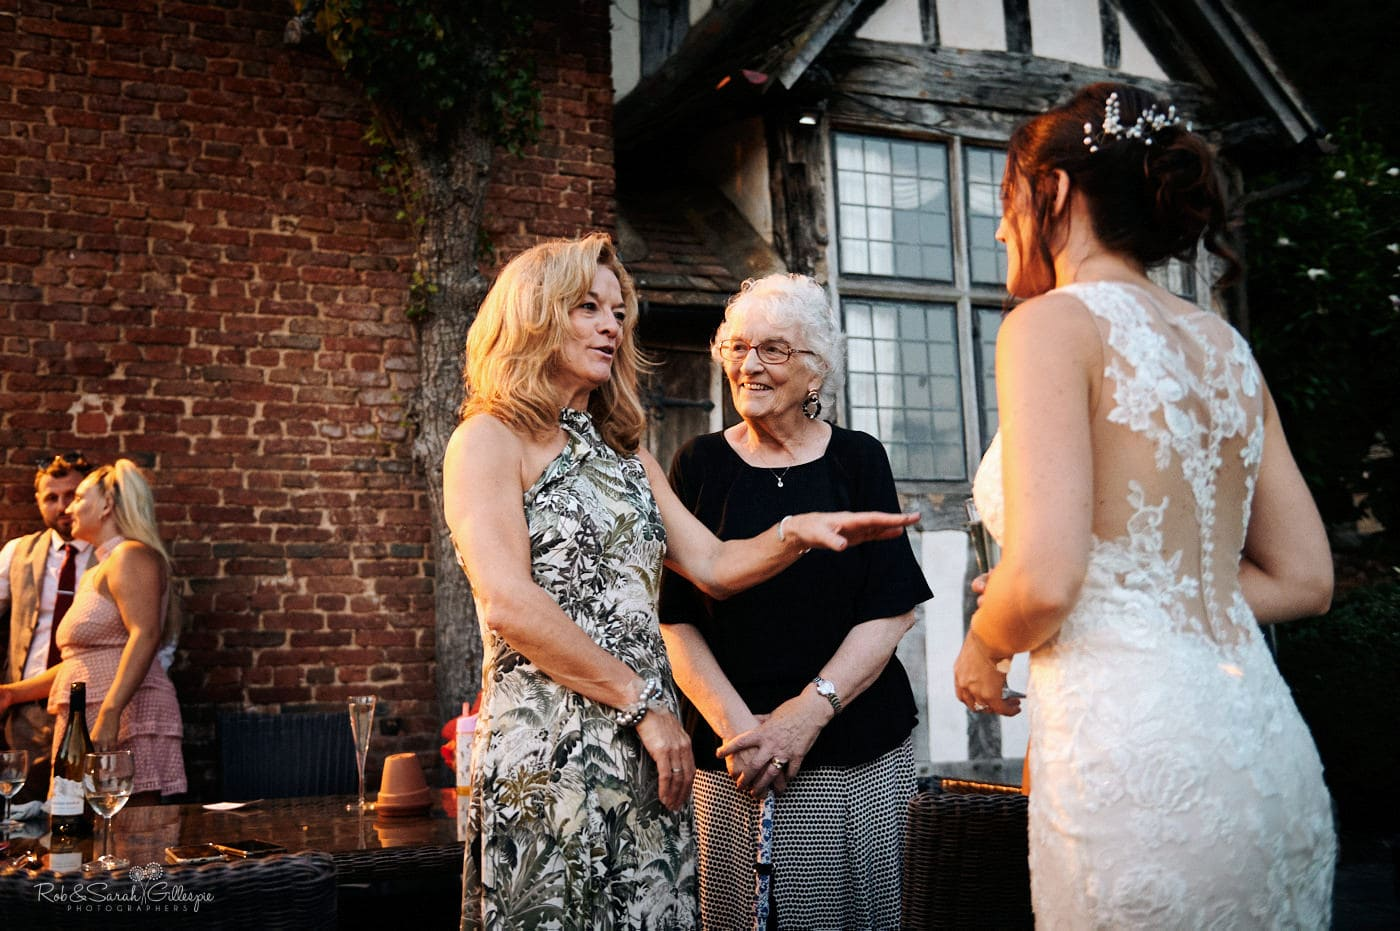 Wedding guests chat to bride during evening reception